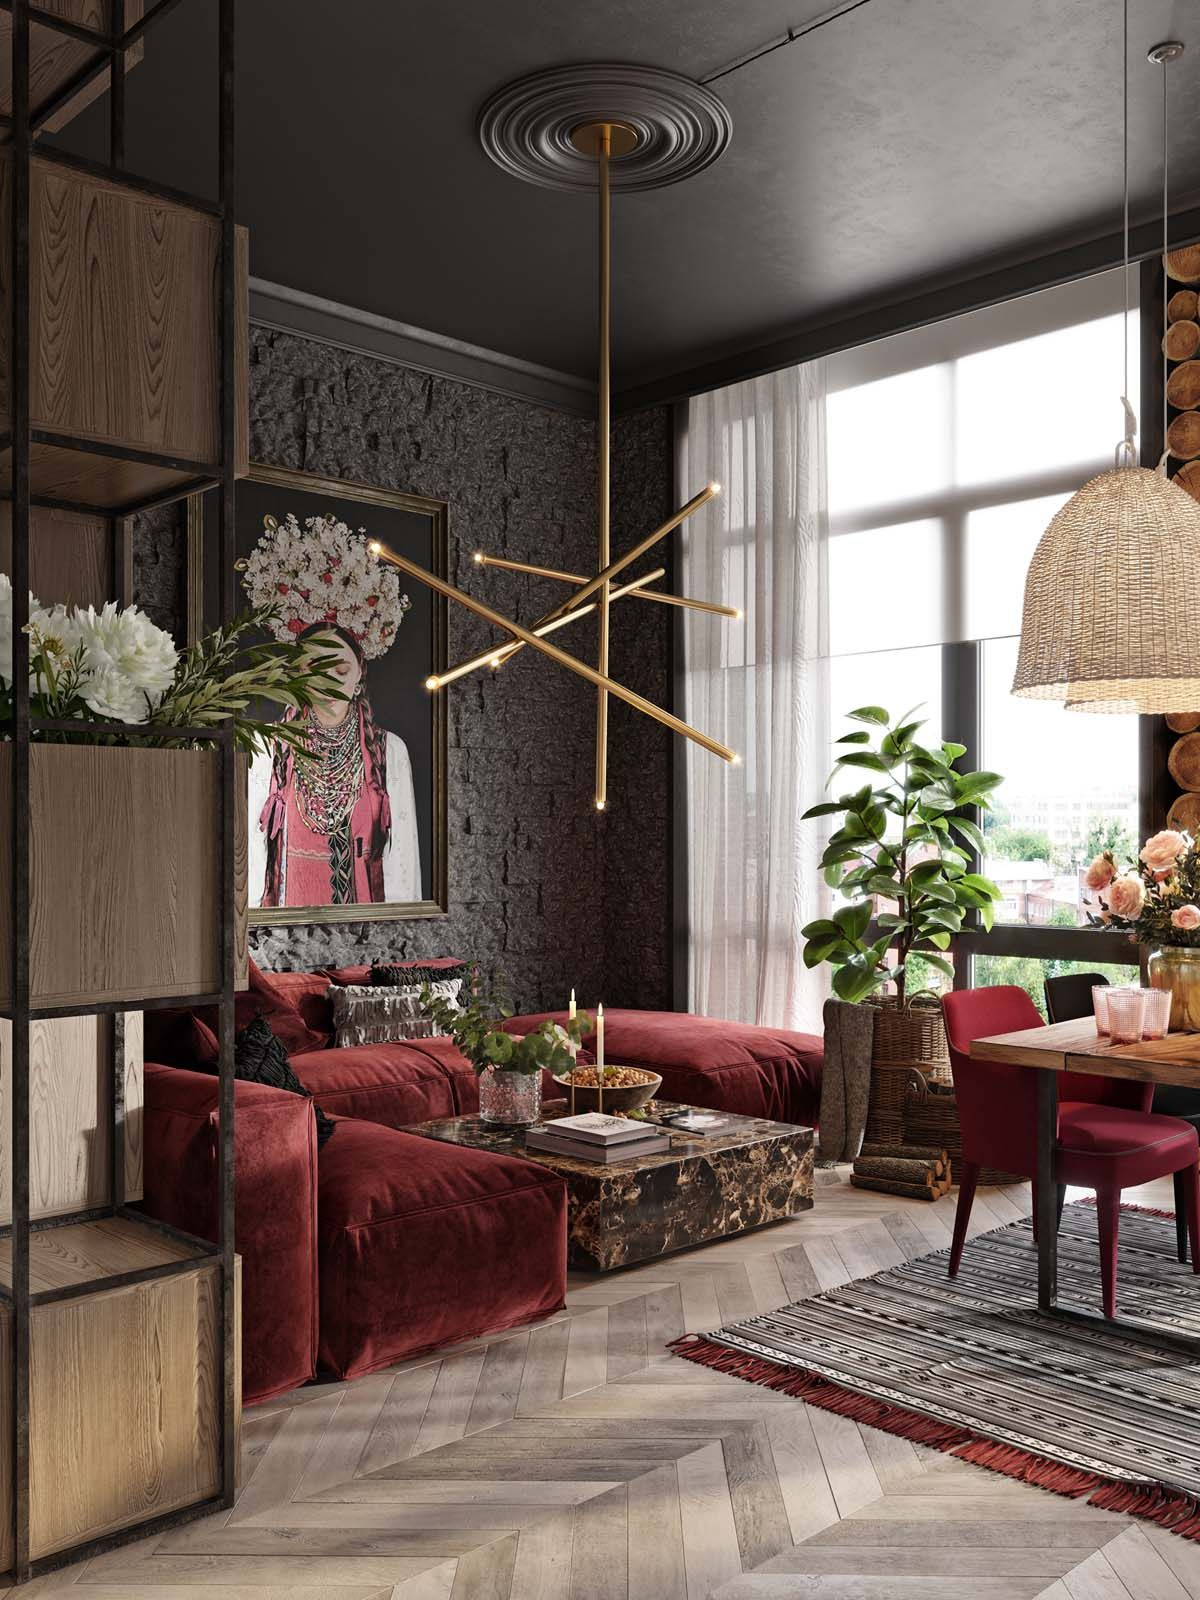 Modern Room Designs And Colors: A Plush Red Apartment With Rustic Accents